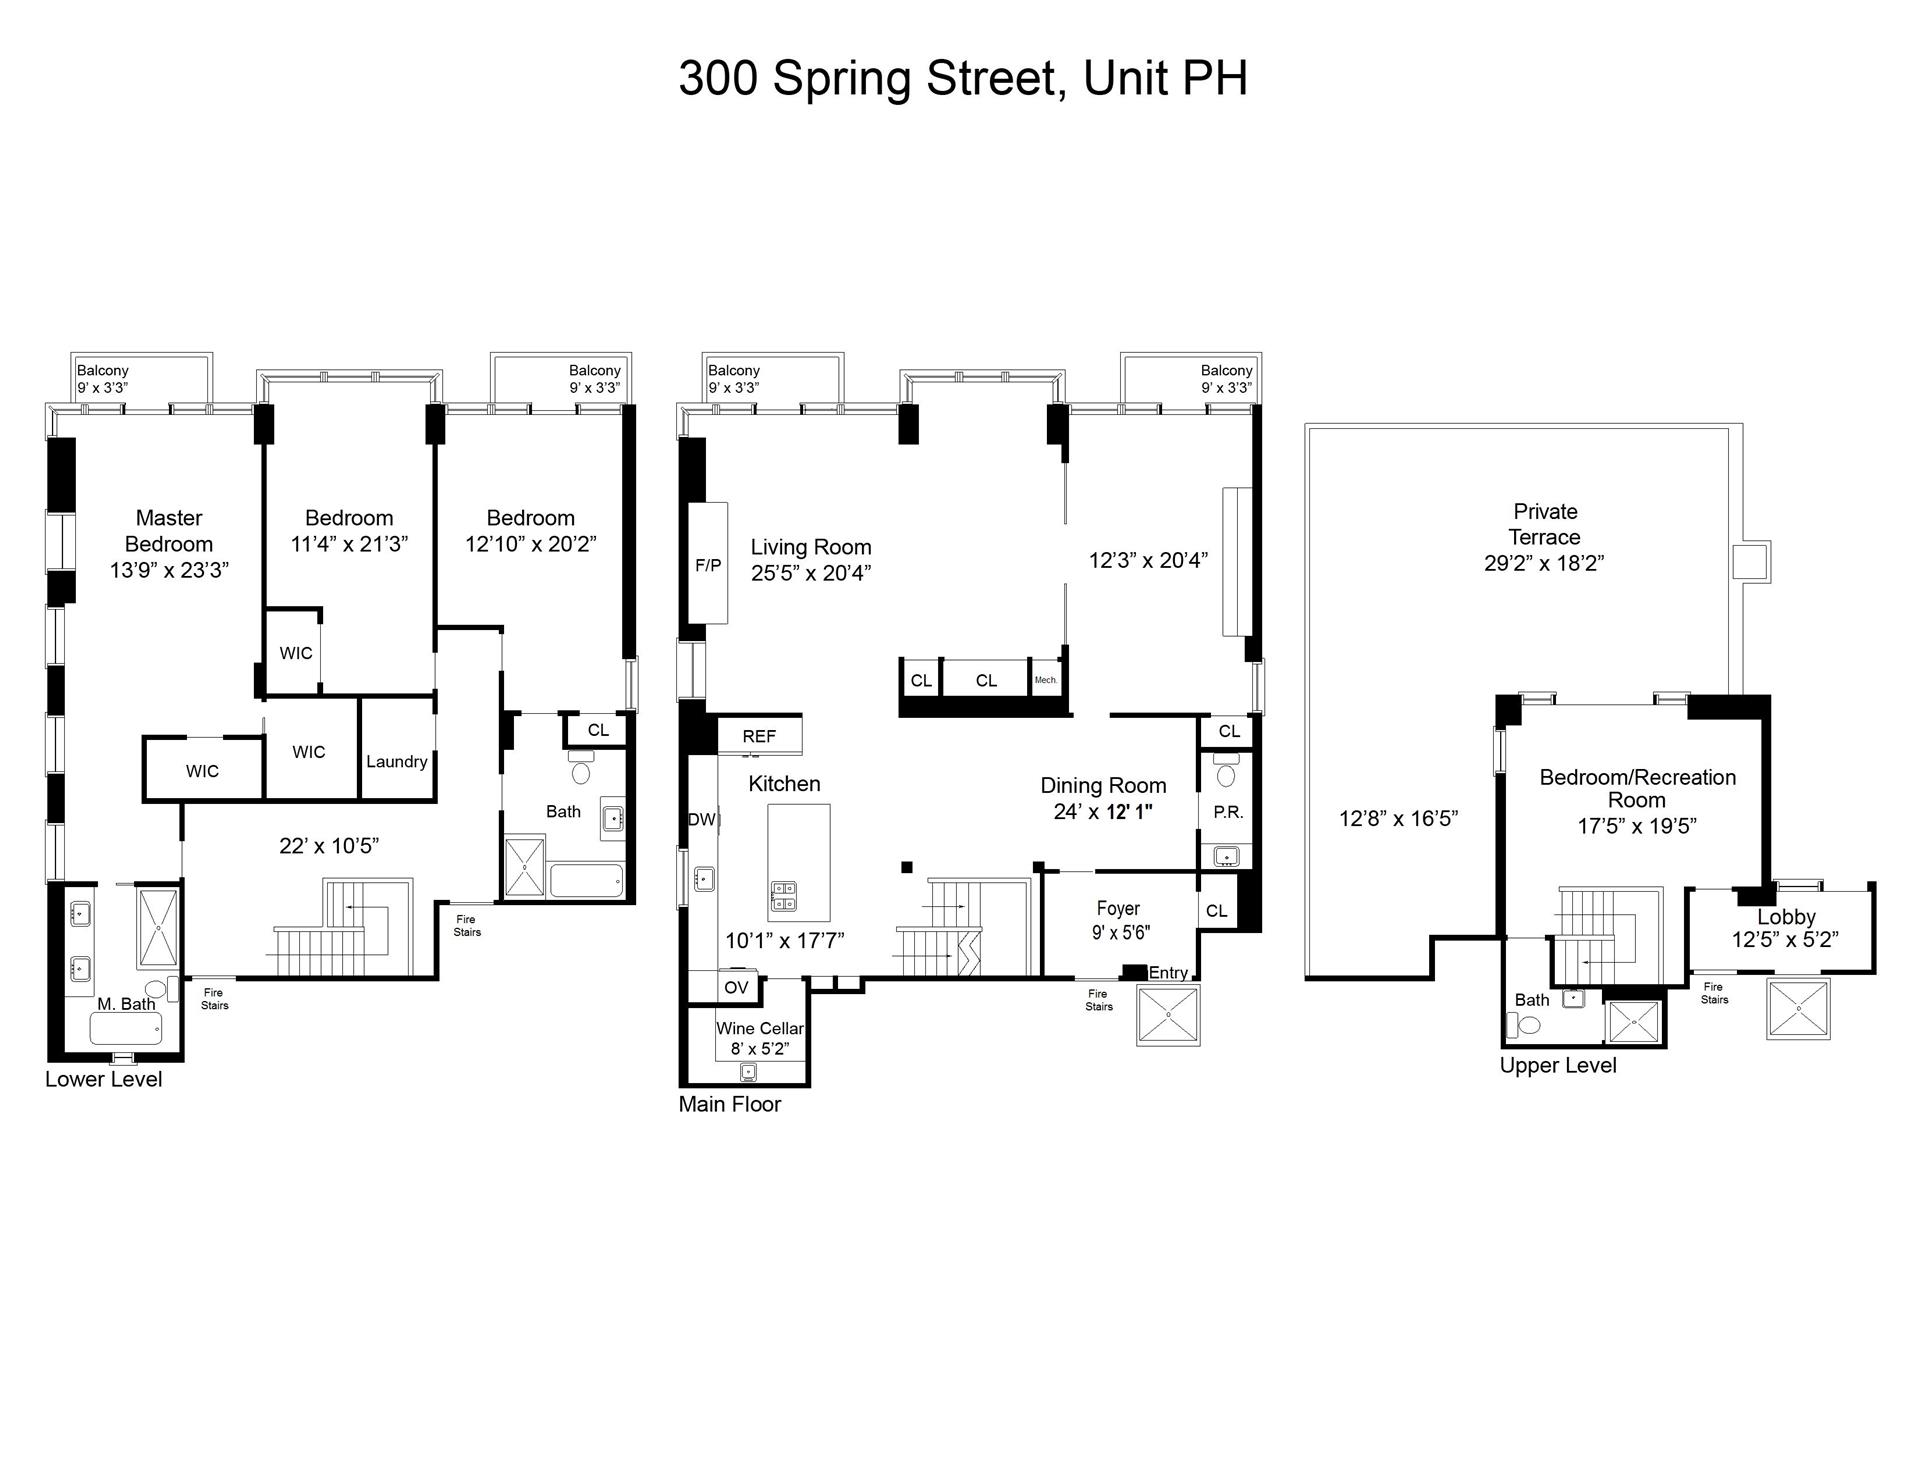 Floor plan of 300 Spring St, PHA - SoHo - Nolita, New York